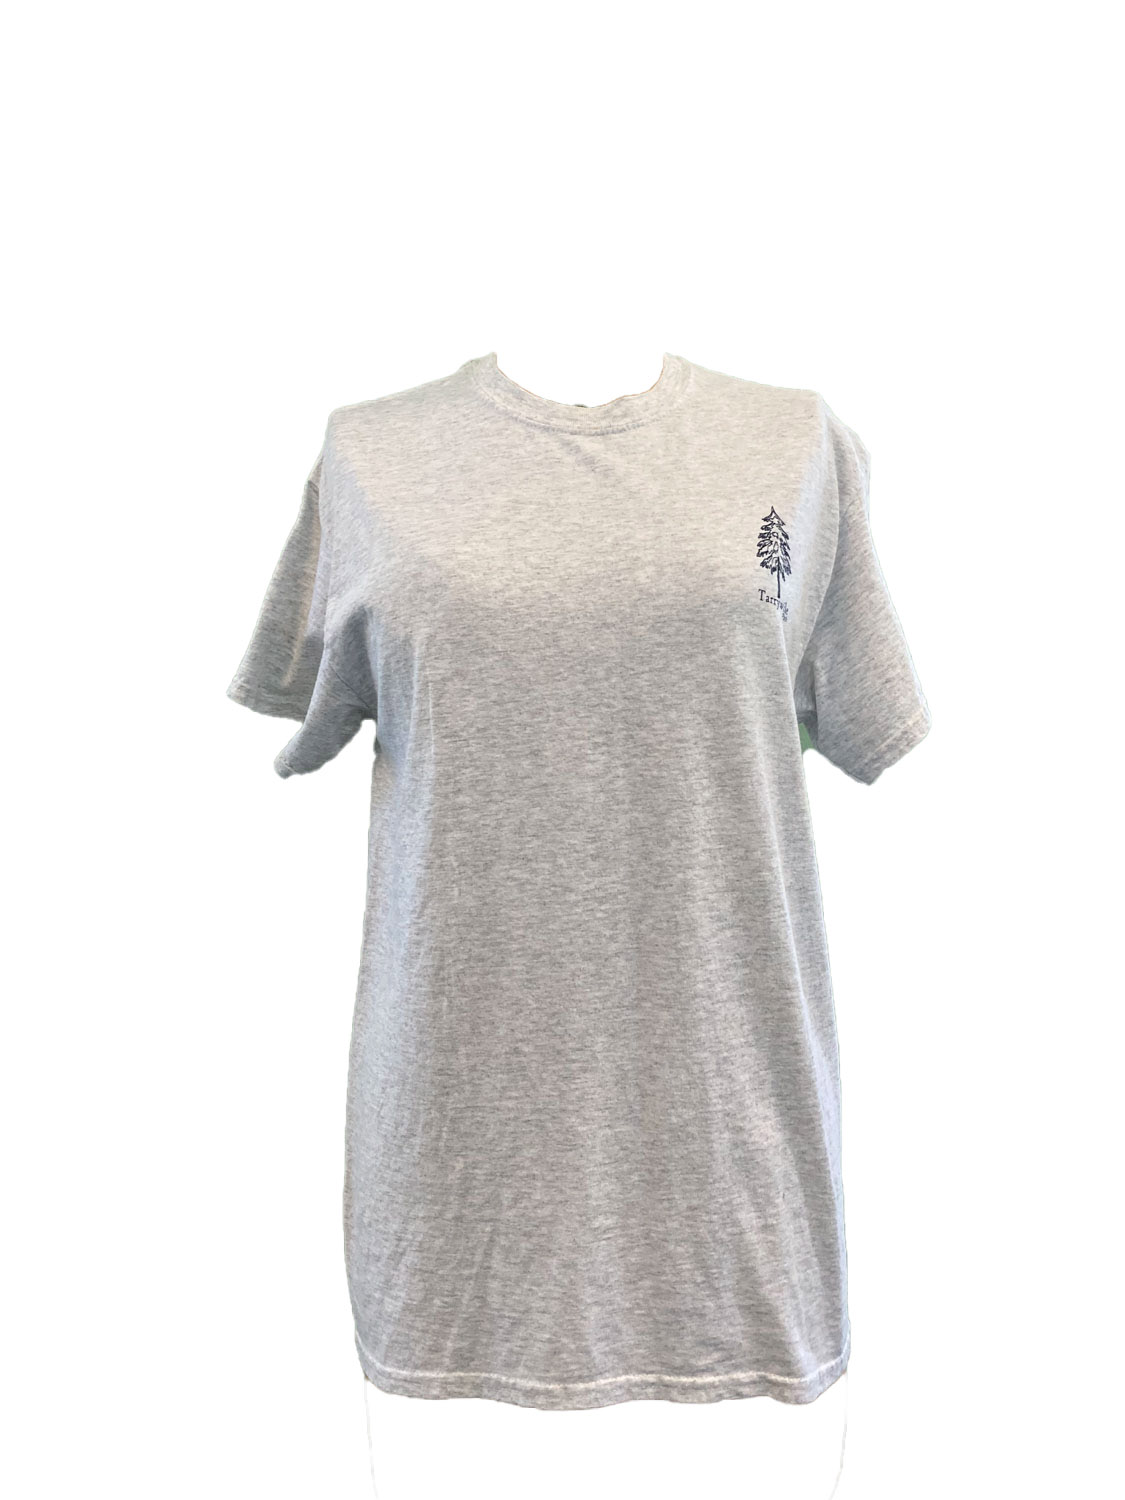 grey t-shirt with evergreen and tarrywile park